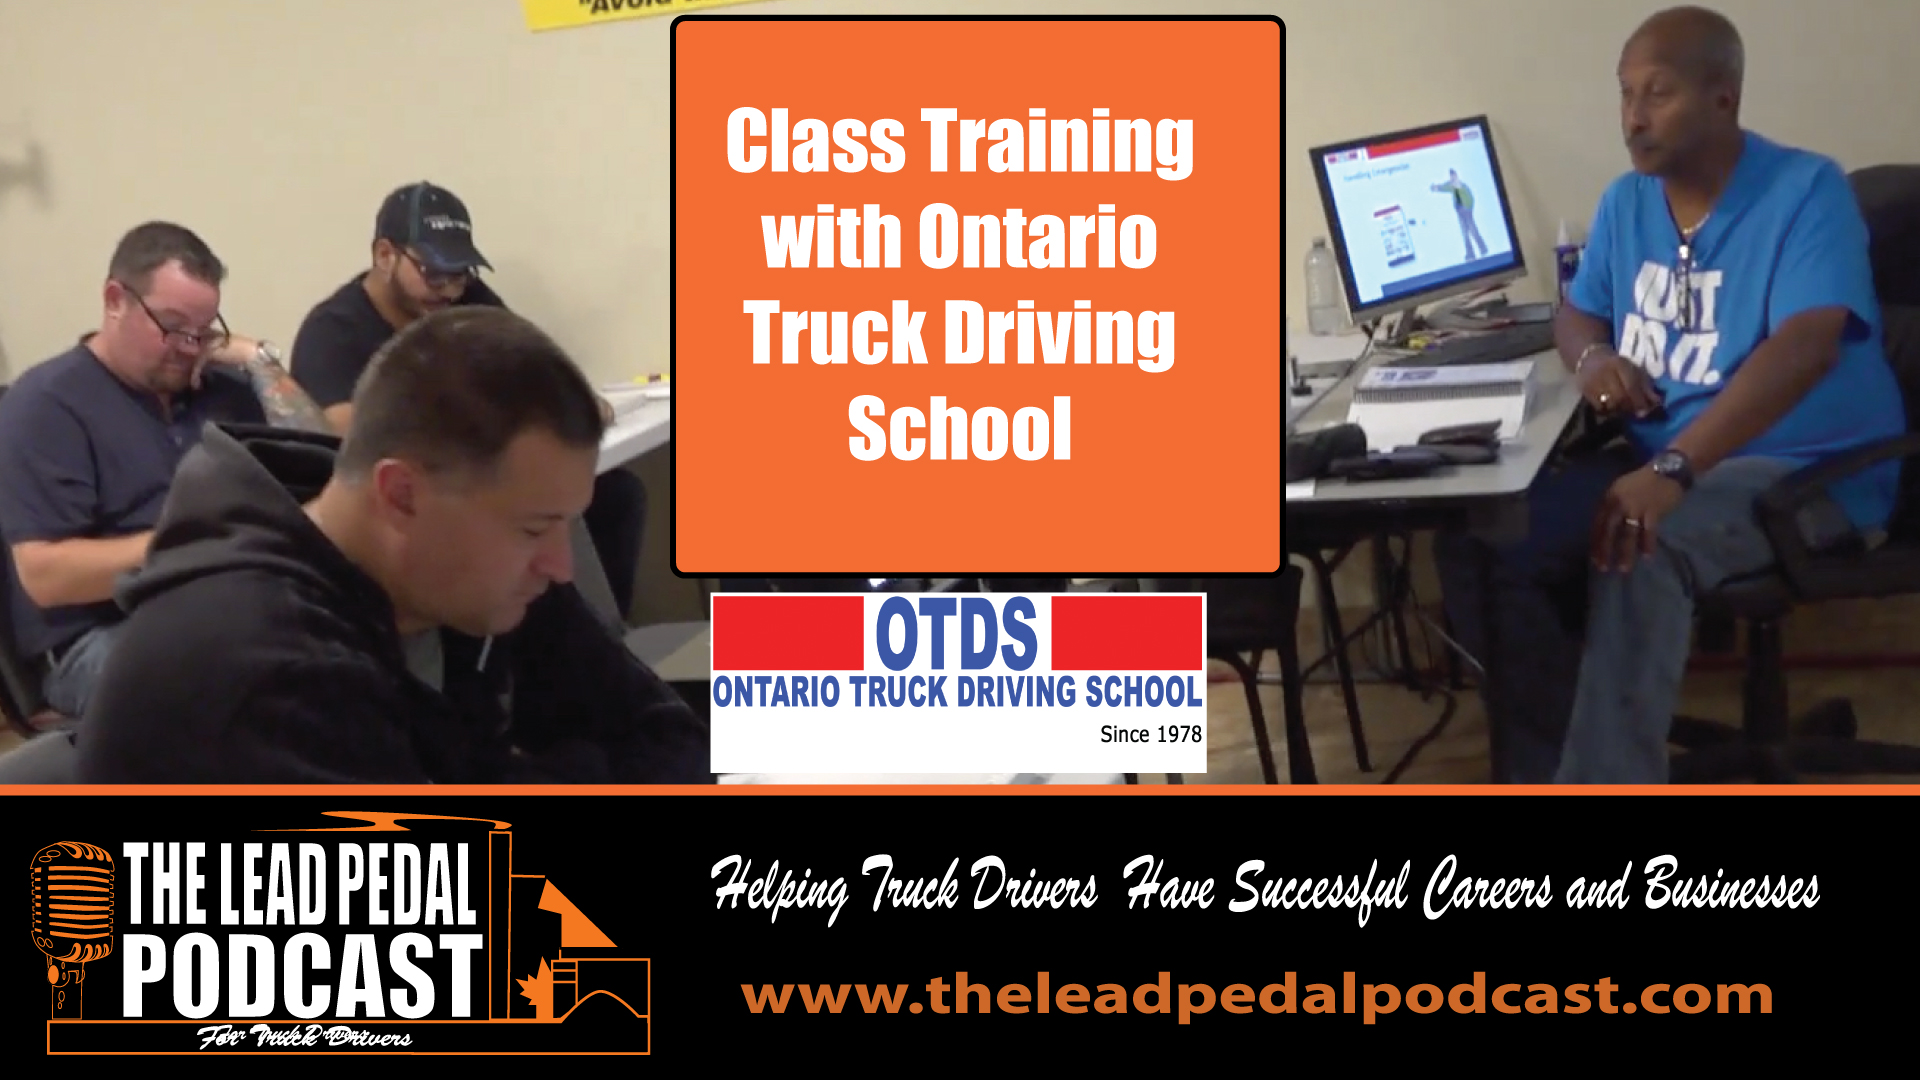 In the Class with Ontario Truck Driving School